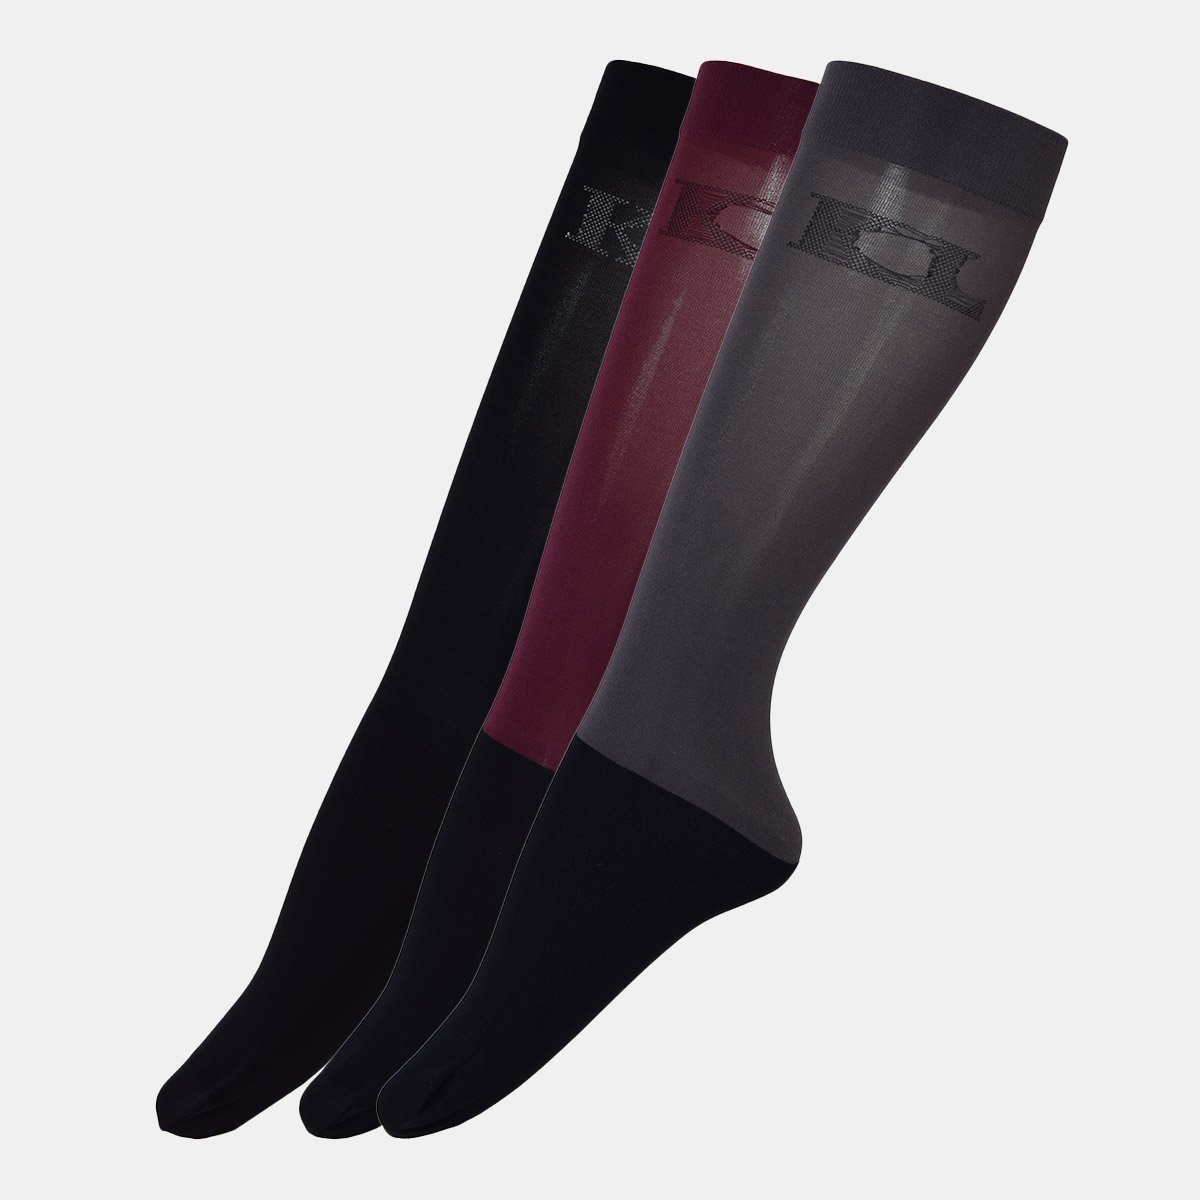 Kingsland Brook Show Socks 3 Pack